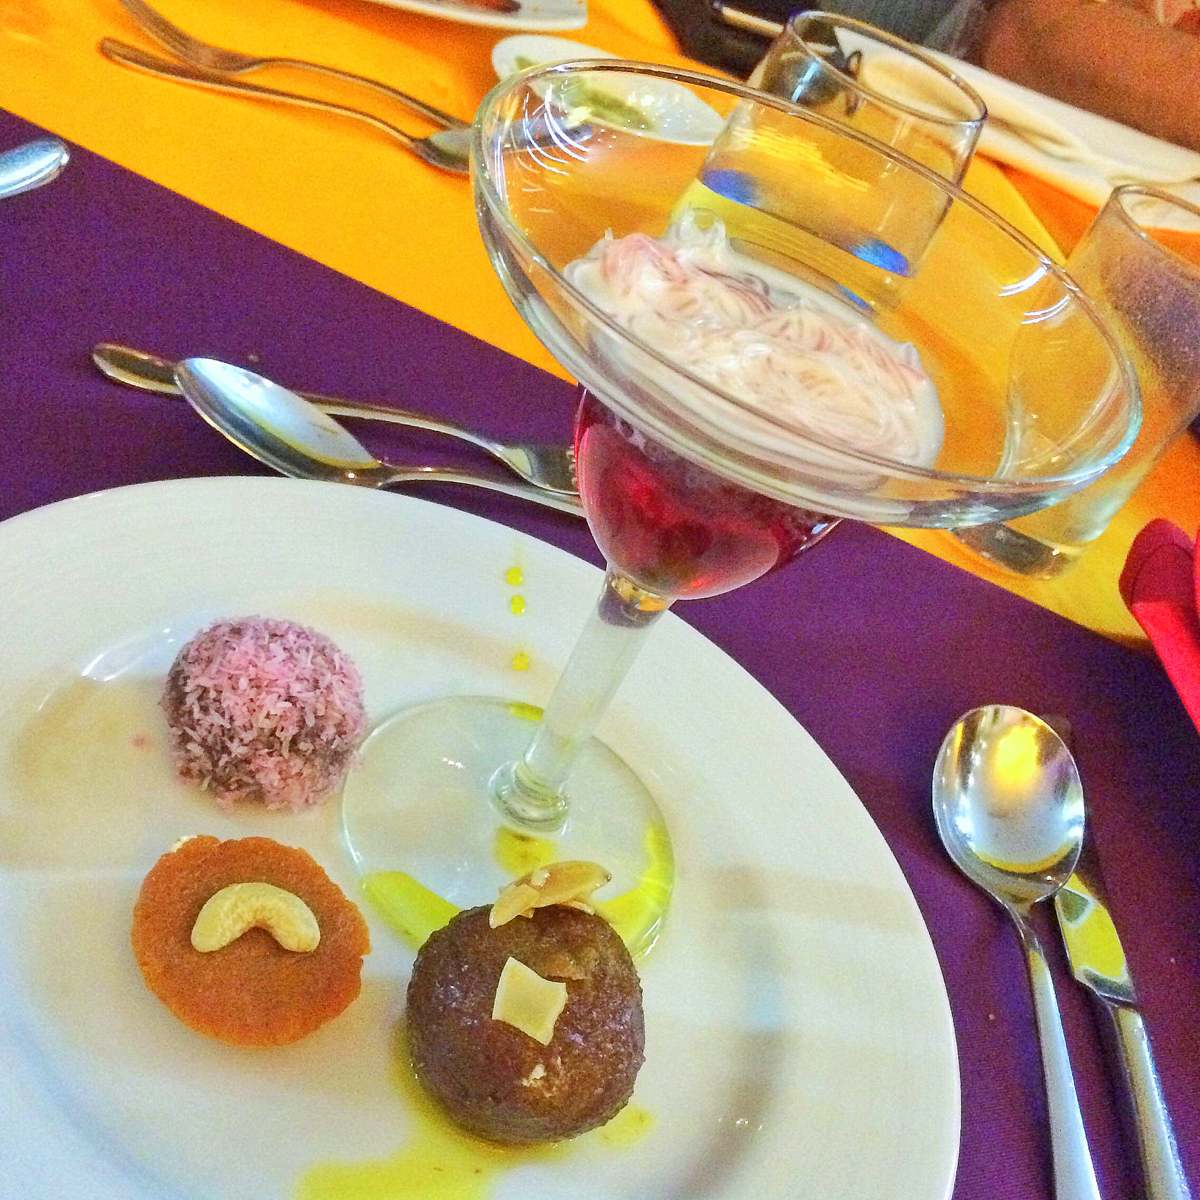 Khana: Gulab Jamum, Falooda and other Indian sweets were also added at the dessert section.